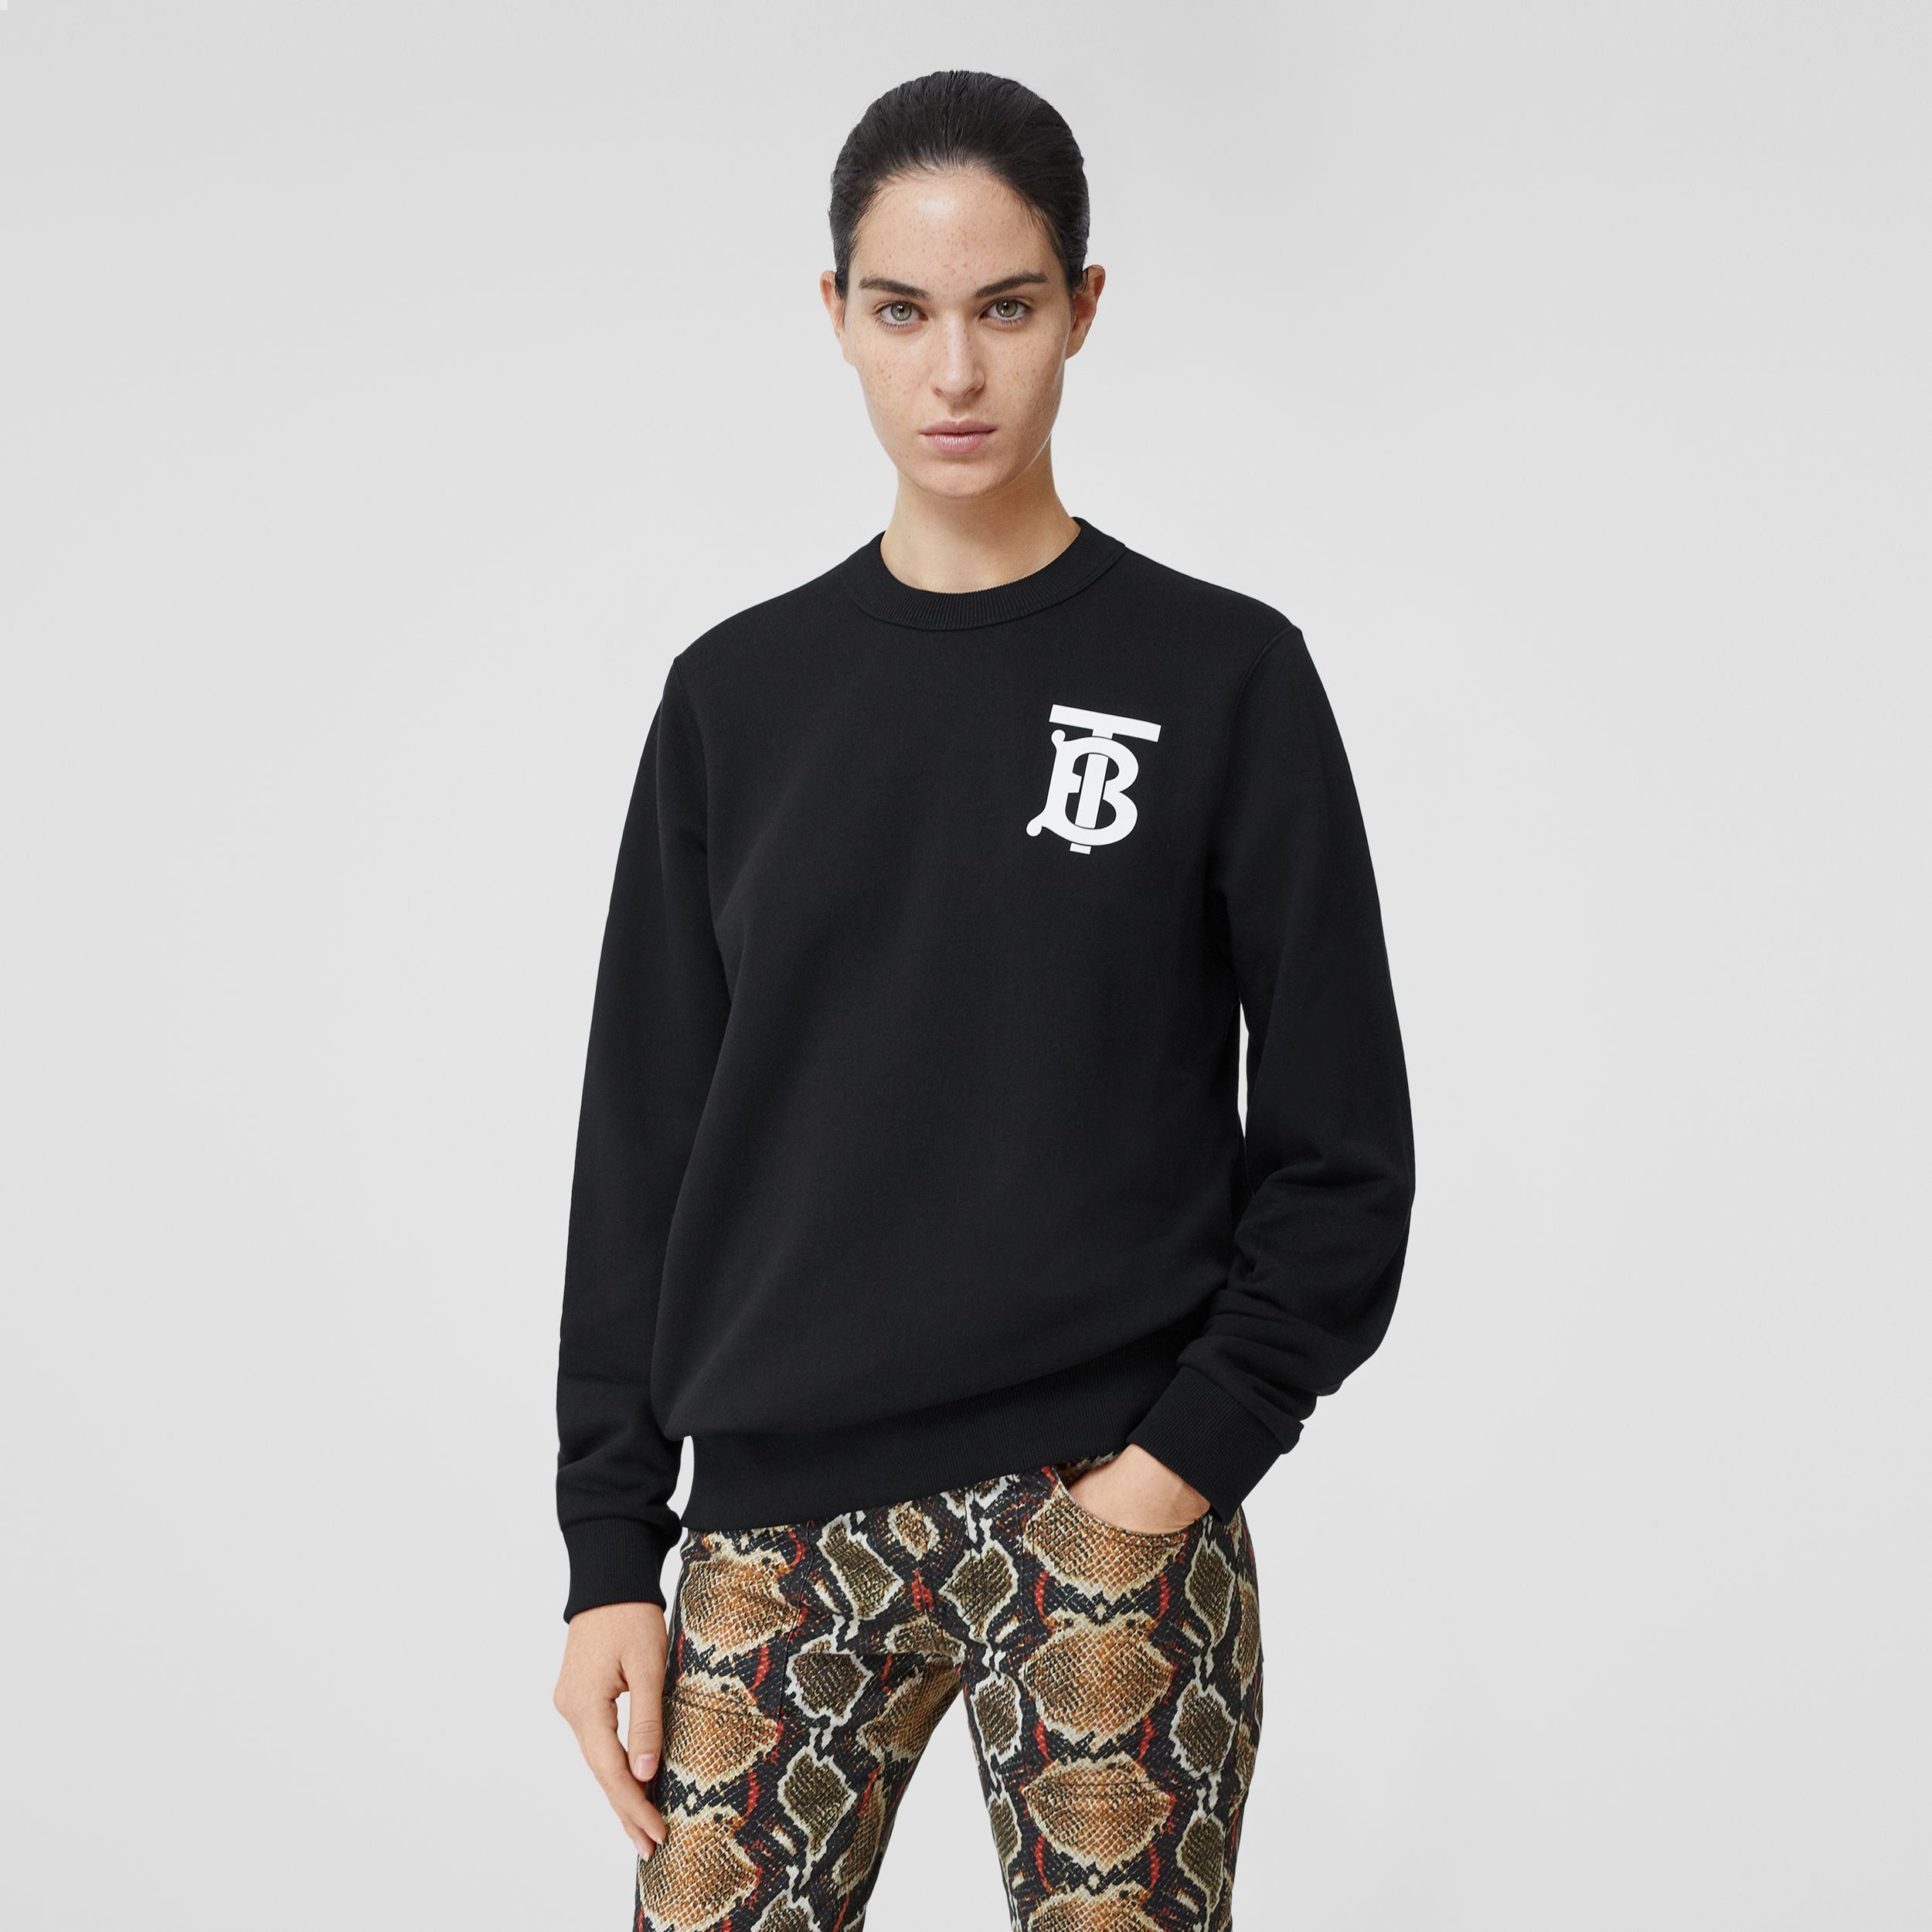 Monogram Motif Cotton Sweatshirt in Black - Women | Burberry Canada - 1